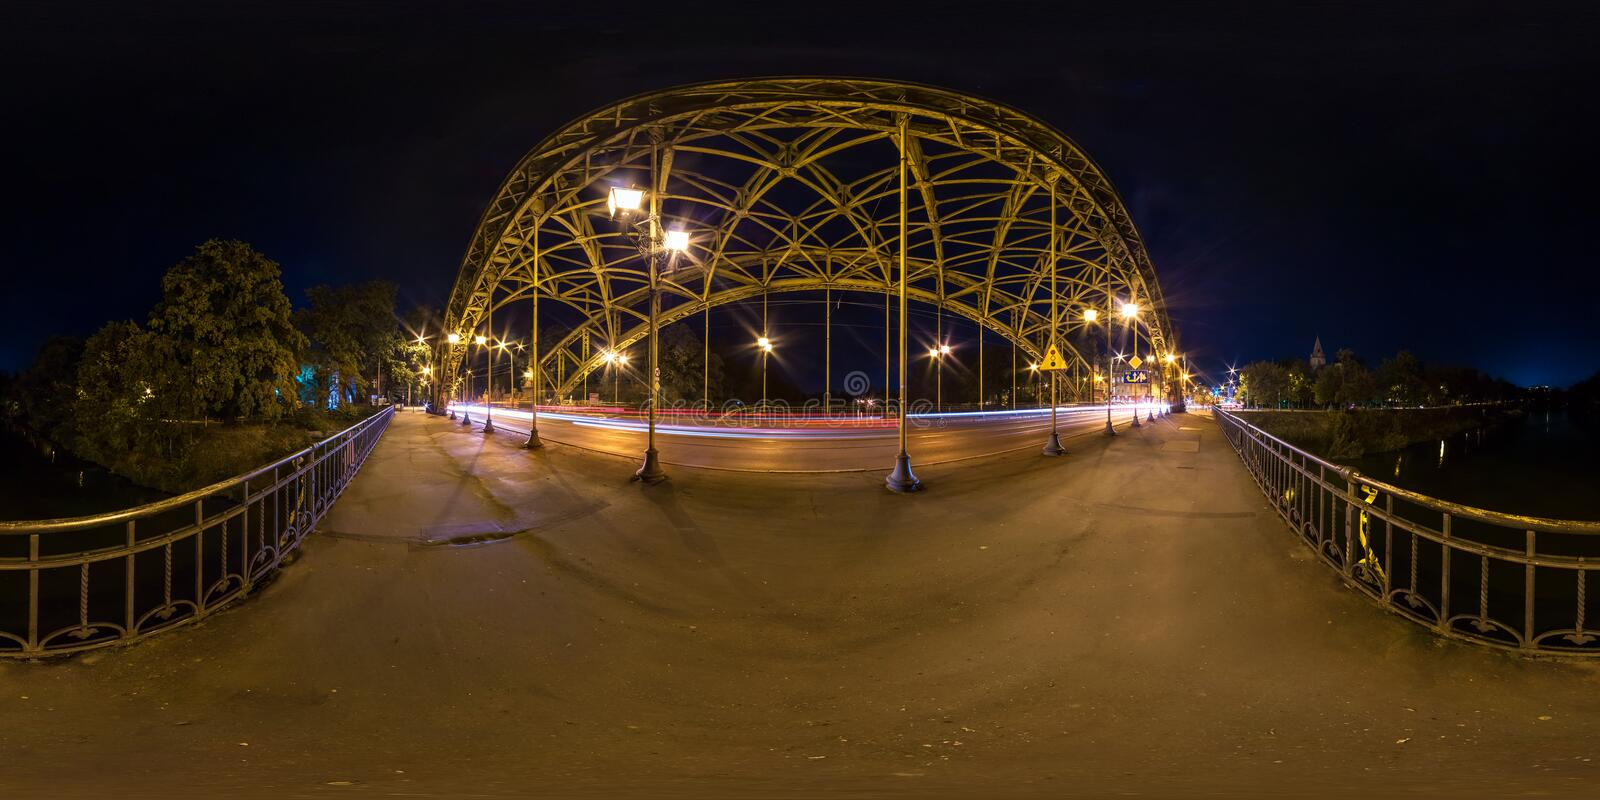 WROCLAW, POLAND - SEPTEMBER, 2018: Full seamless spherical 360 degrees angle view night panorama near steel frame construction of royalty free stock photography